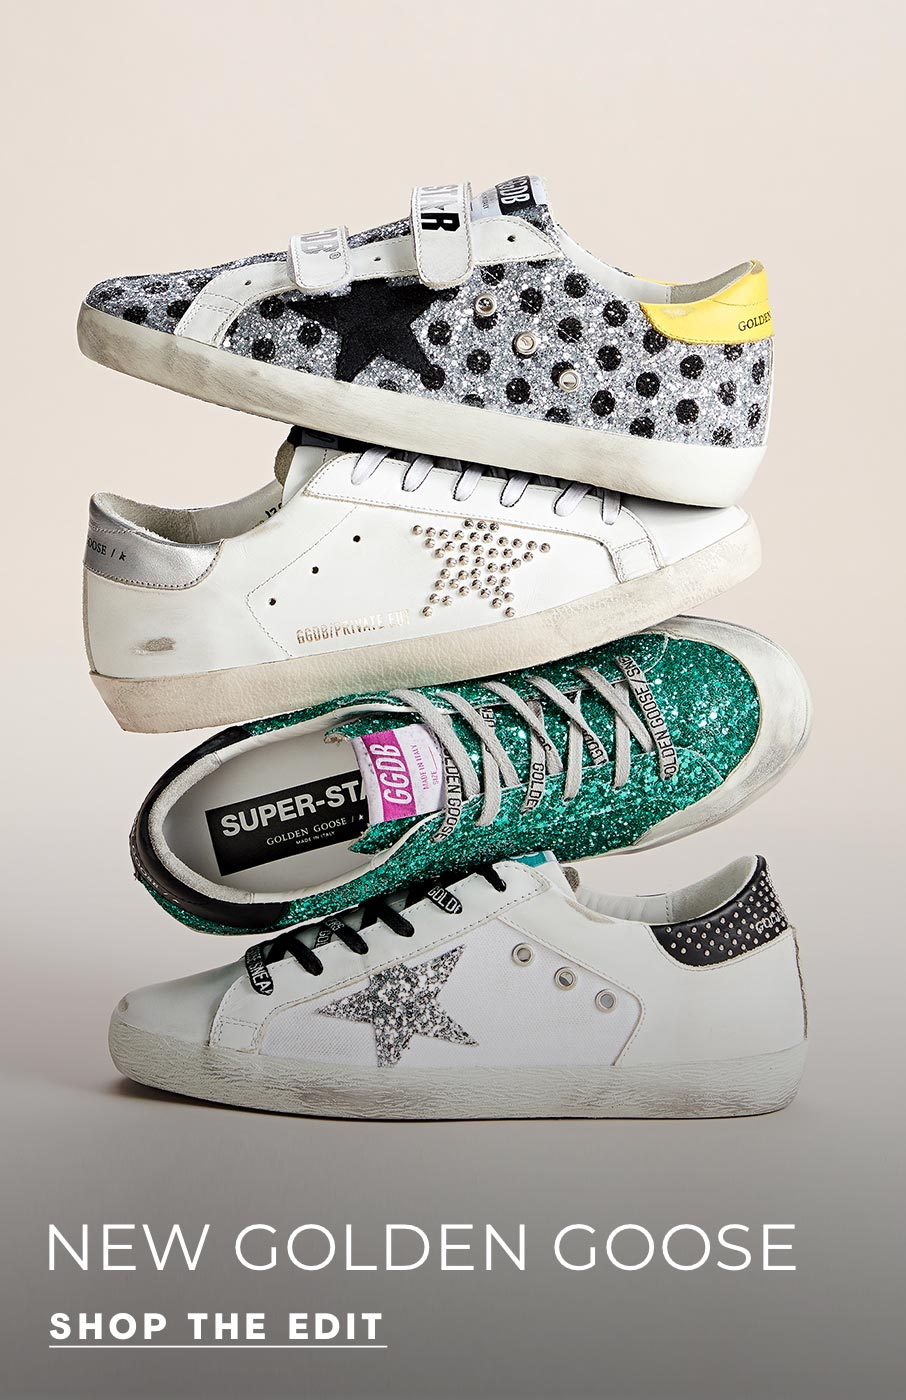 New Golden Goose